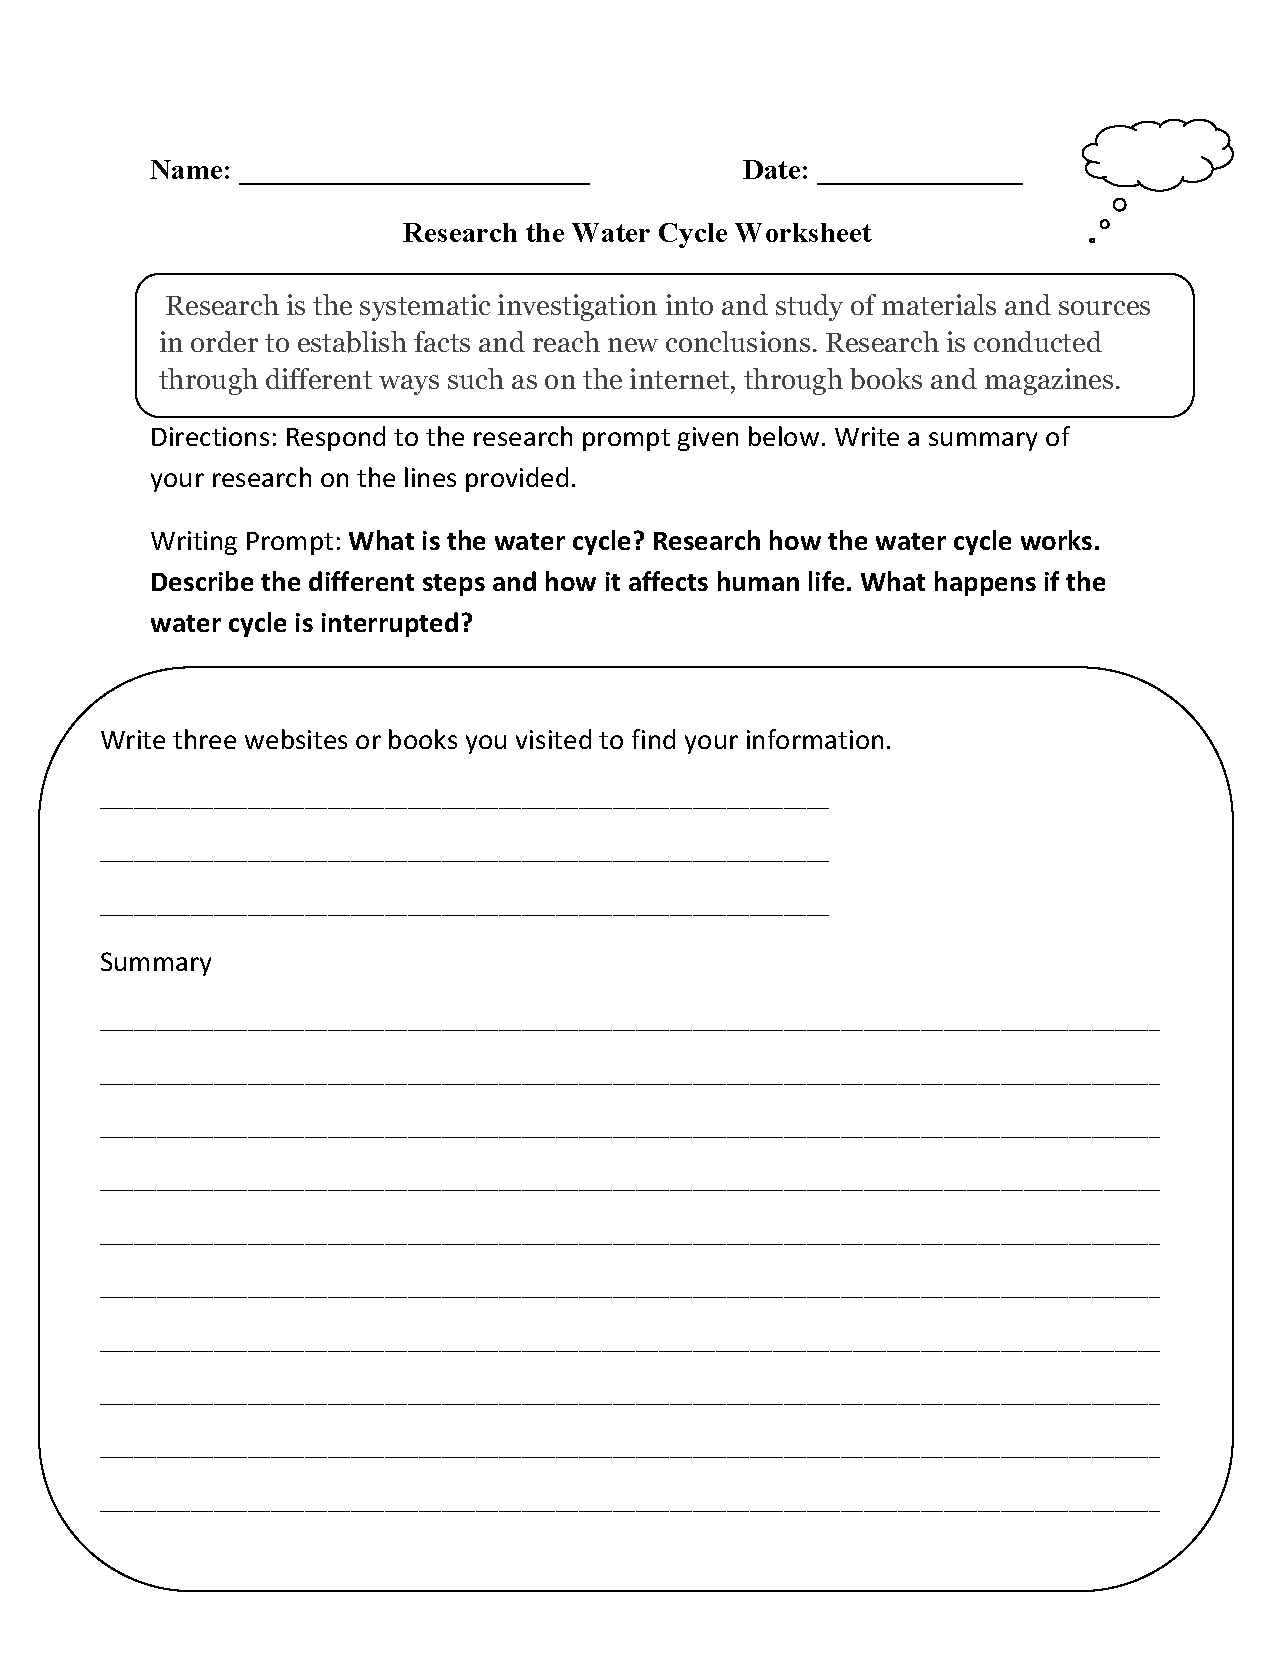 Research The Water Cycle Worksheet